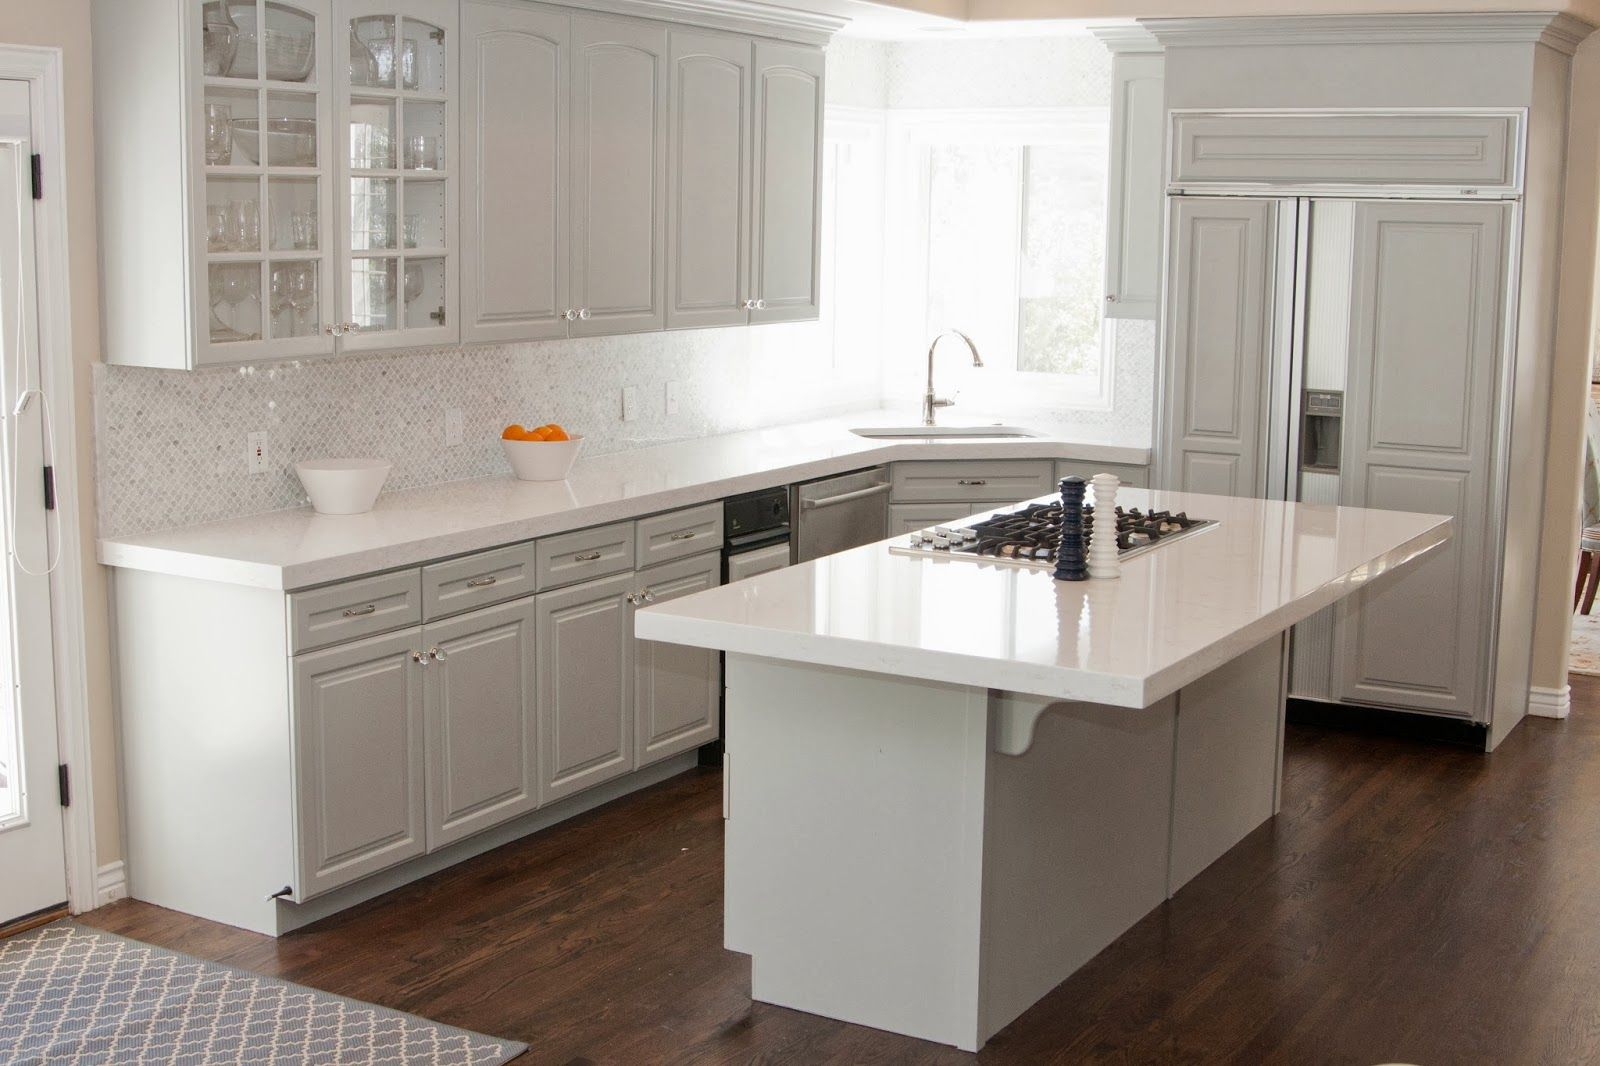 Countertop ideas for white cabinets google search for New ideas for kitchen cabinets